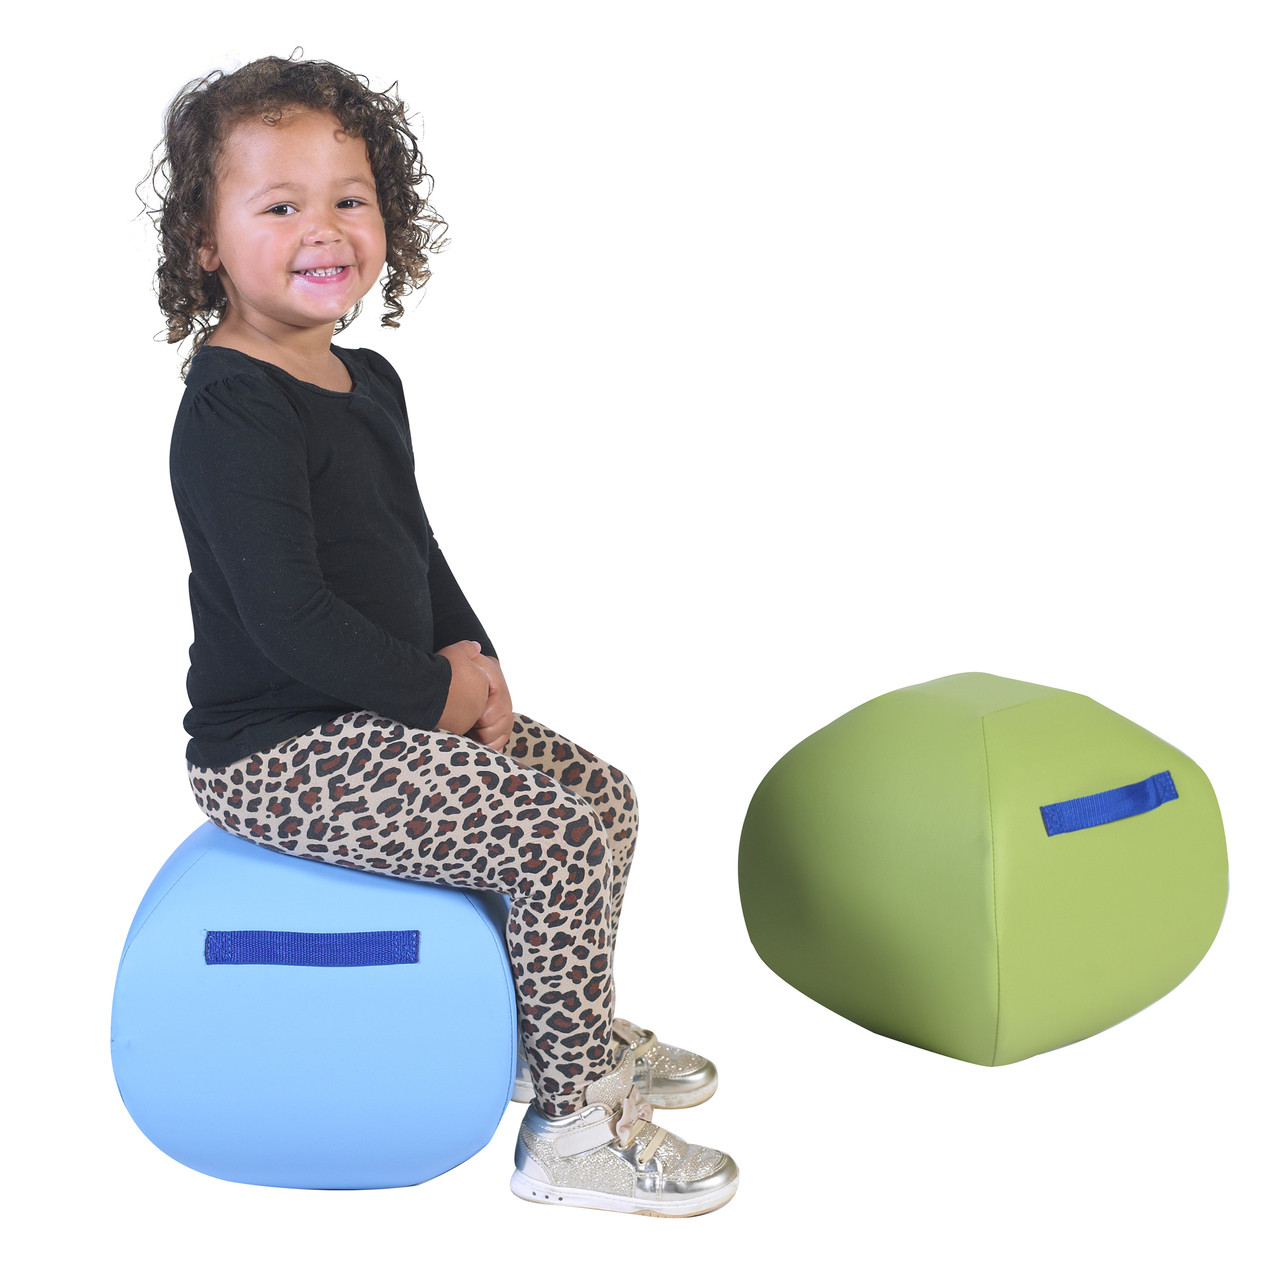 Peachy The Childrens Factory Cf805 150 Turtle Seat 12H Set Of Two Alphanode Cool Chair Designs And Ideas Alphanodeonline